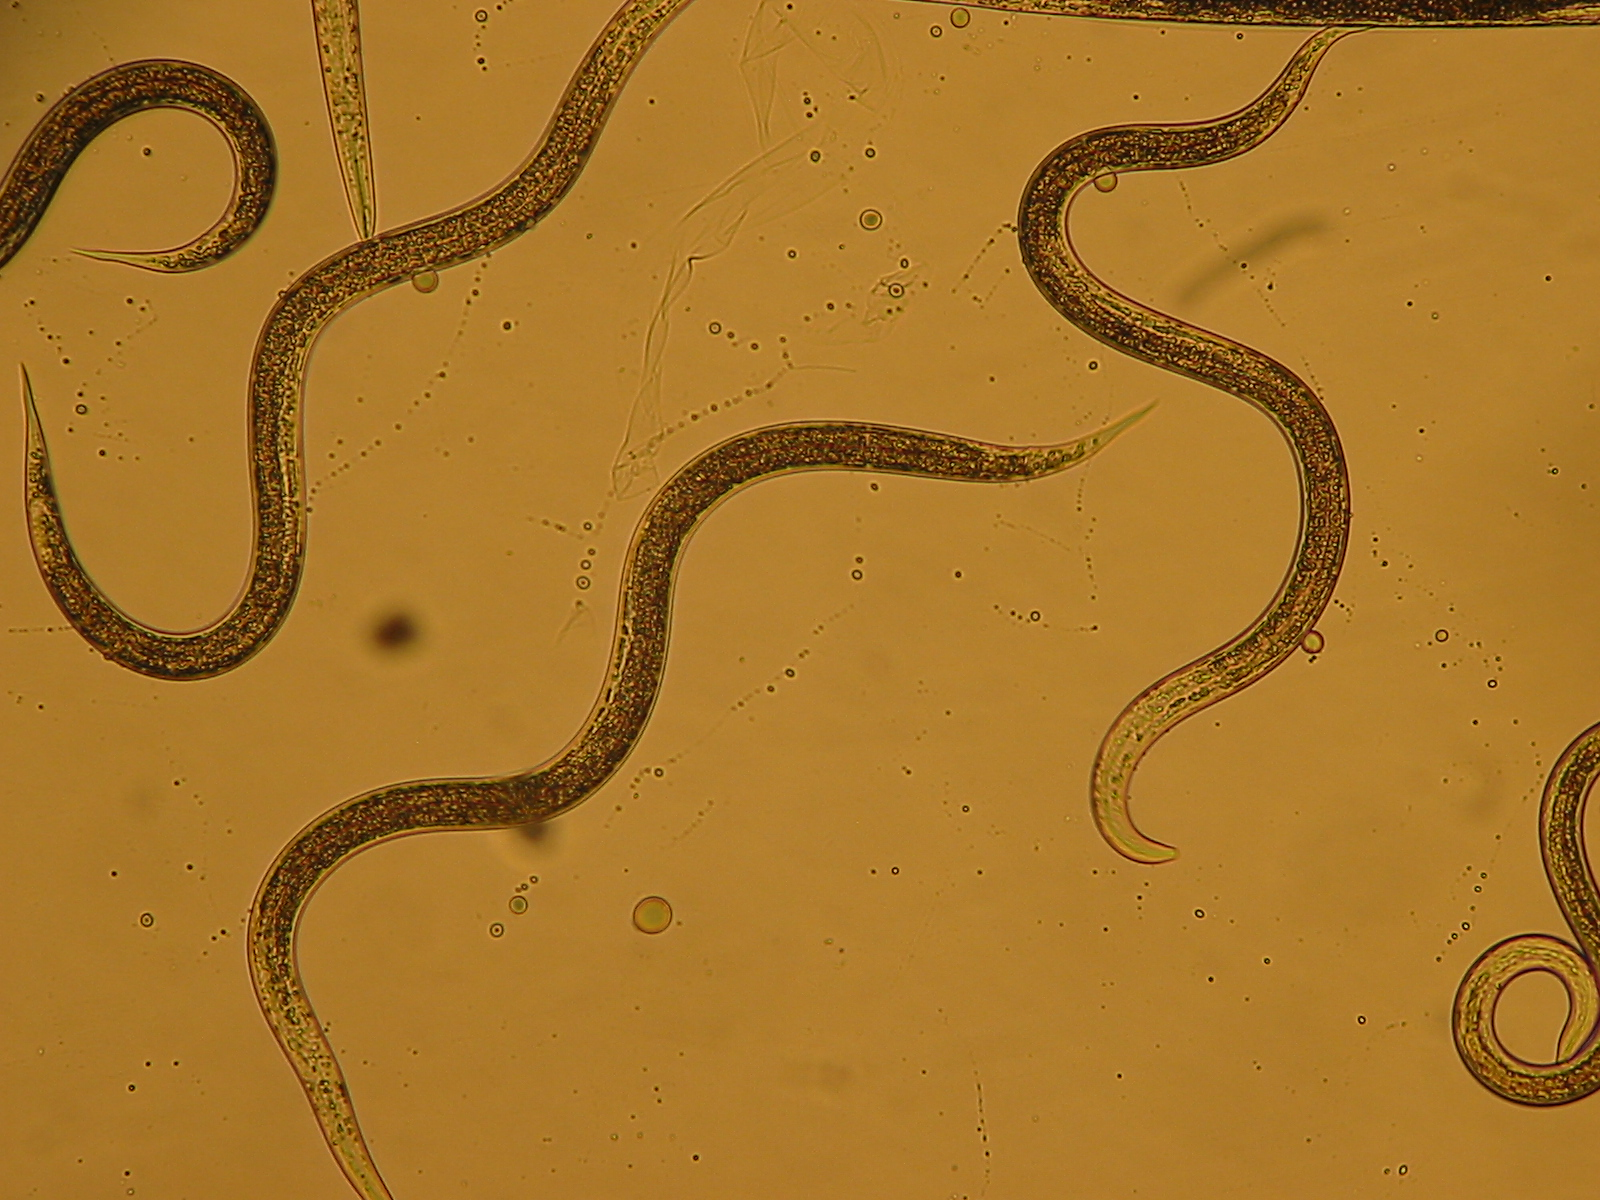 An essay on plant pathogenic nematodes